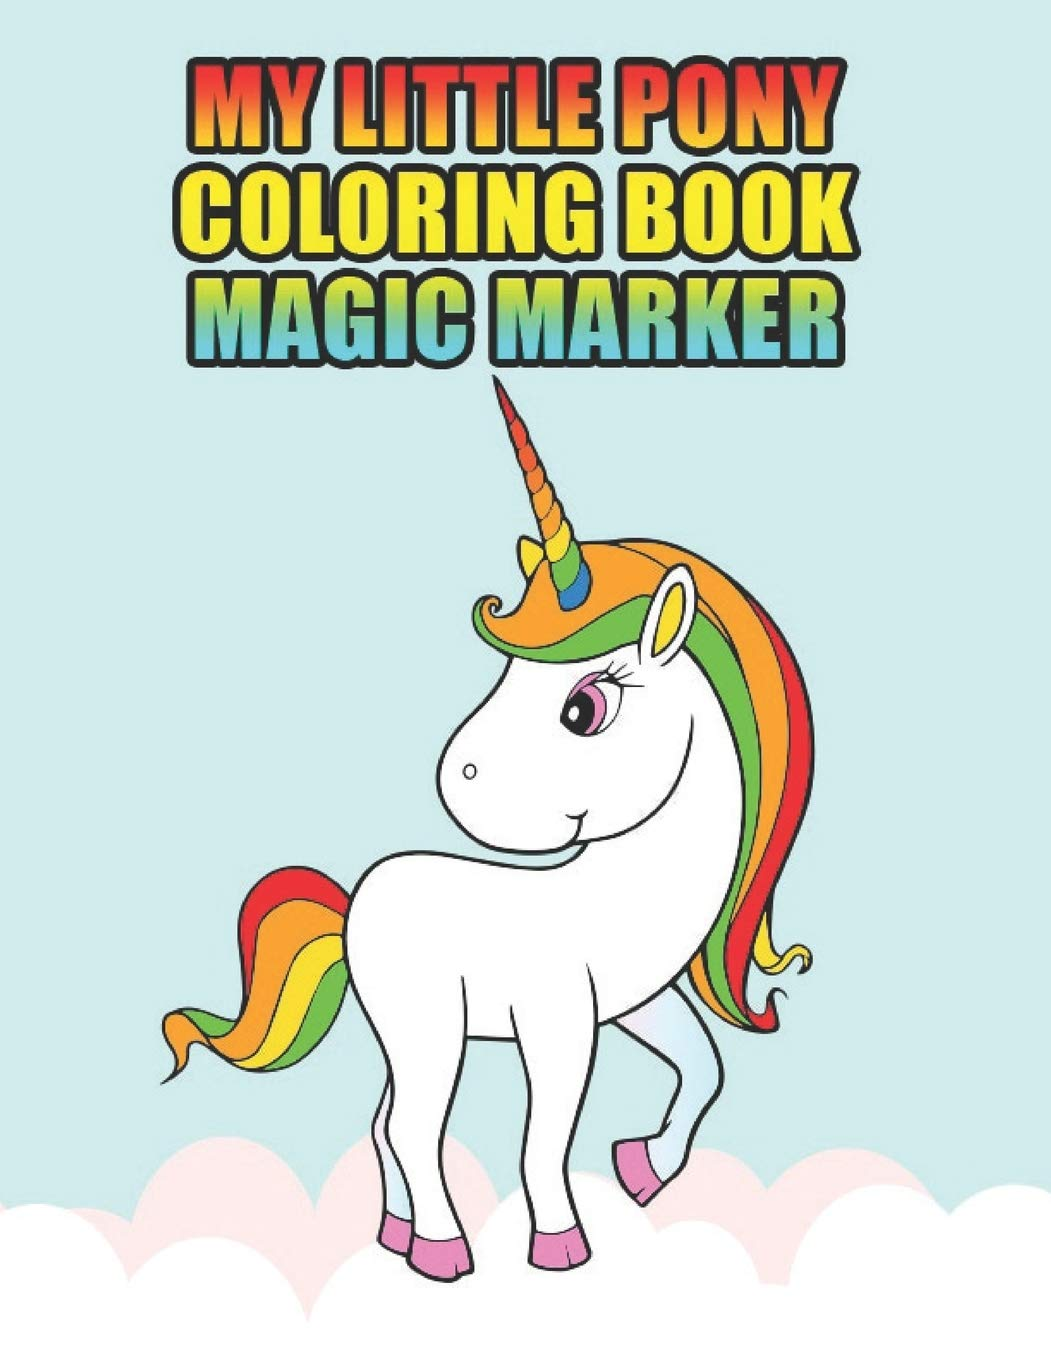 My Little Pony Friendship Is Magic Coloring Pages To - My Little ... | 1360x1051